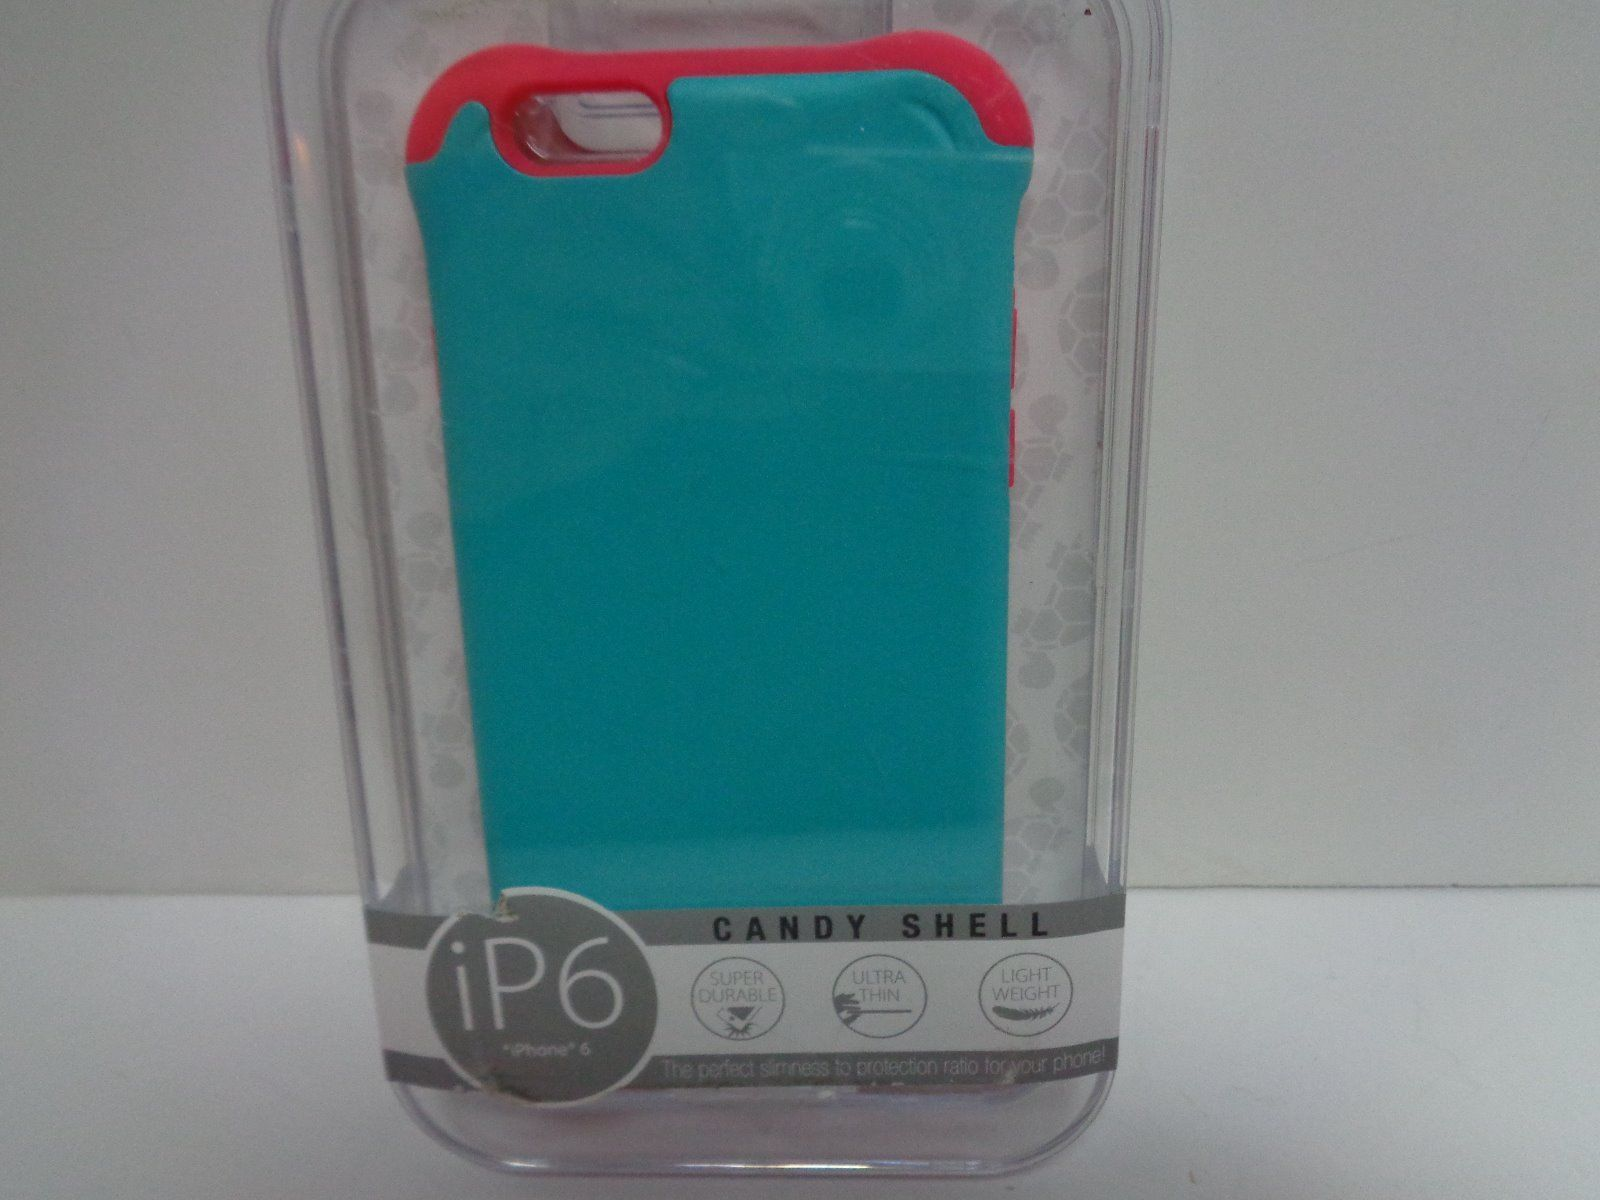 IPhone 6 Cell Phone Case Candy Shell NIB Blue & Red